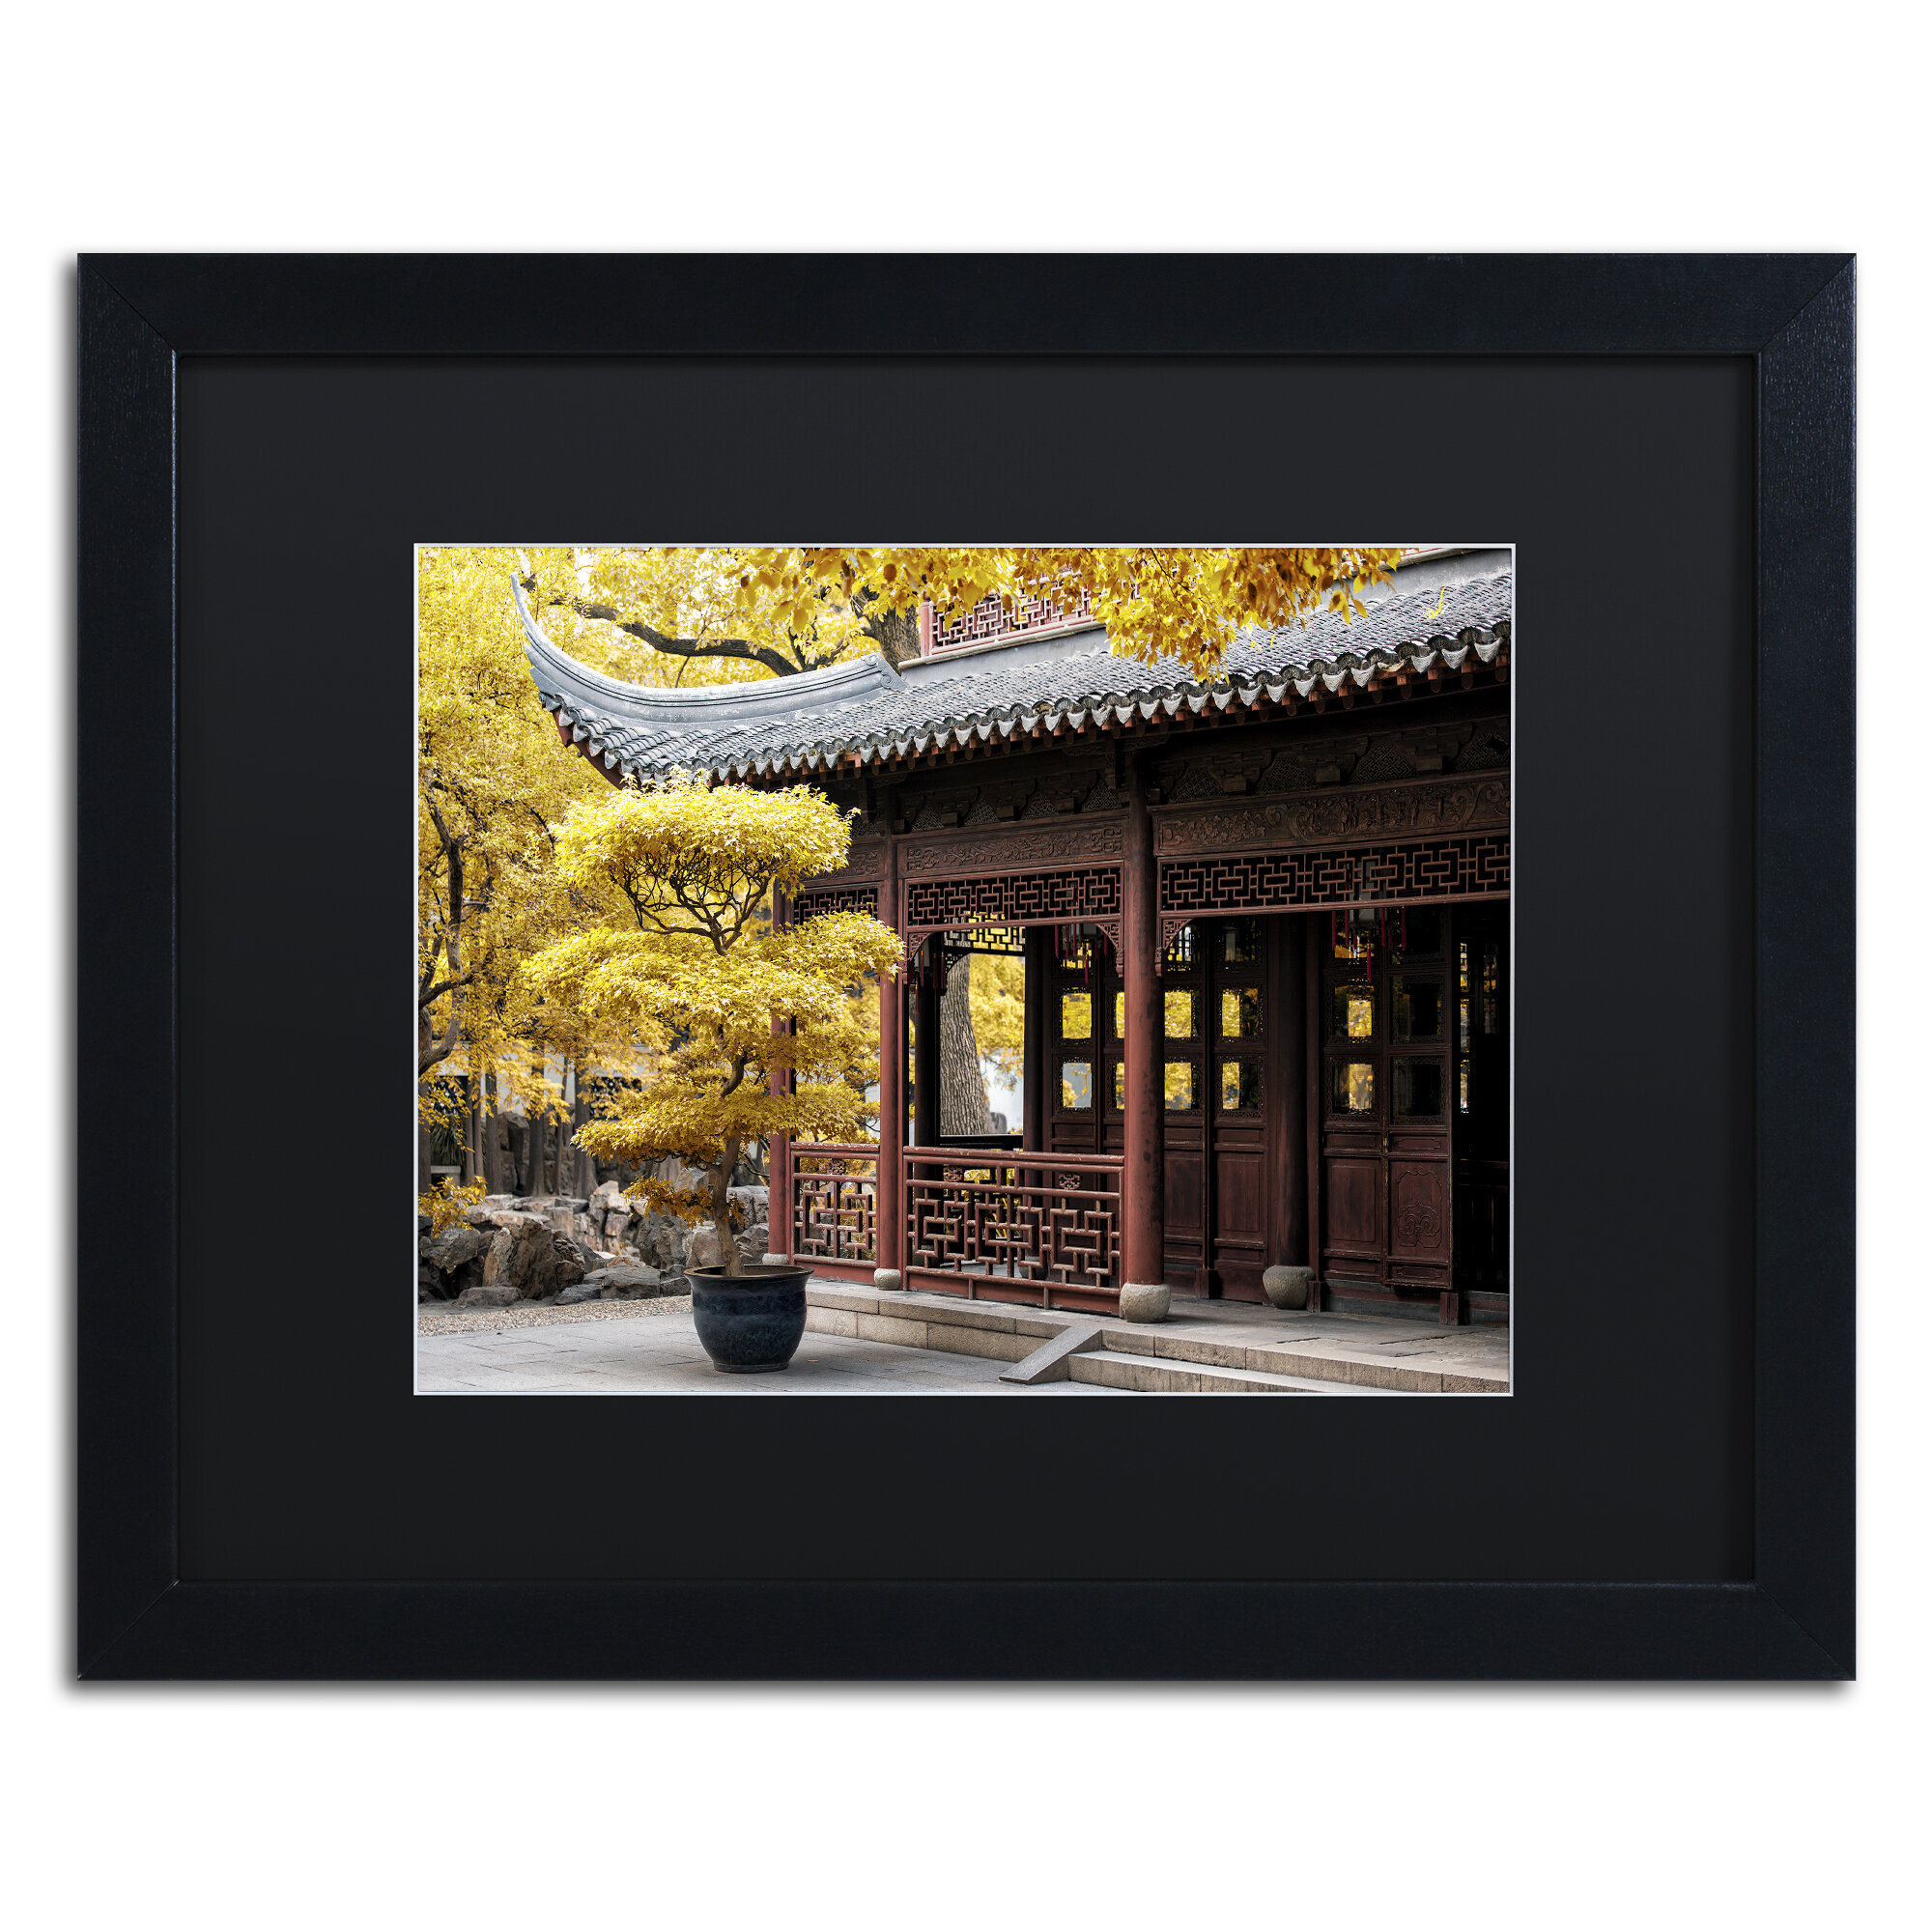 Quot Golden Trees Quot By Philippe Hugonnard Framed Photographic Print